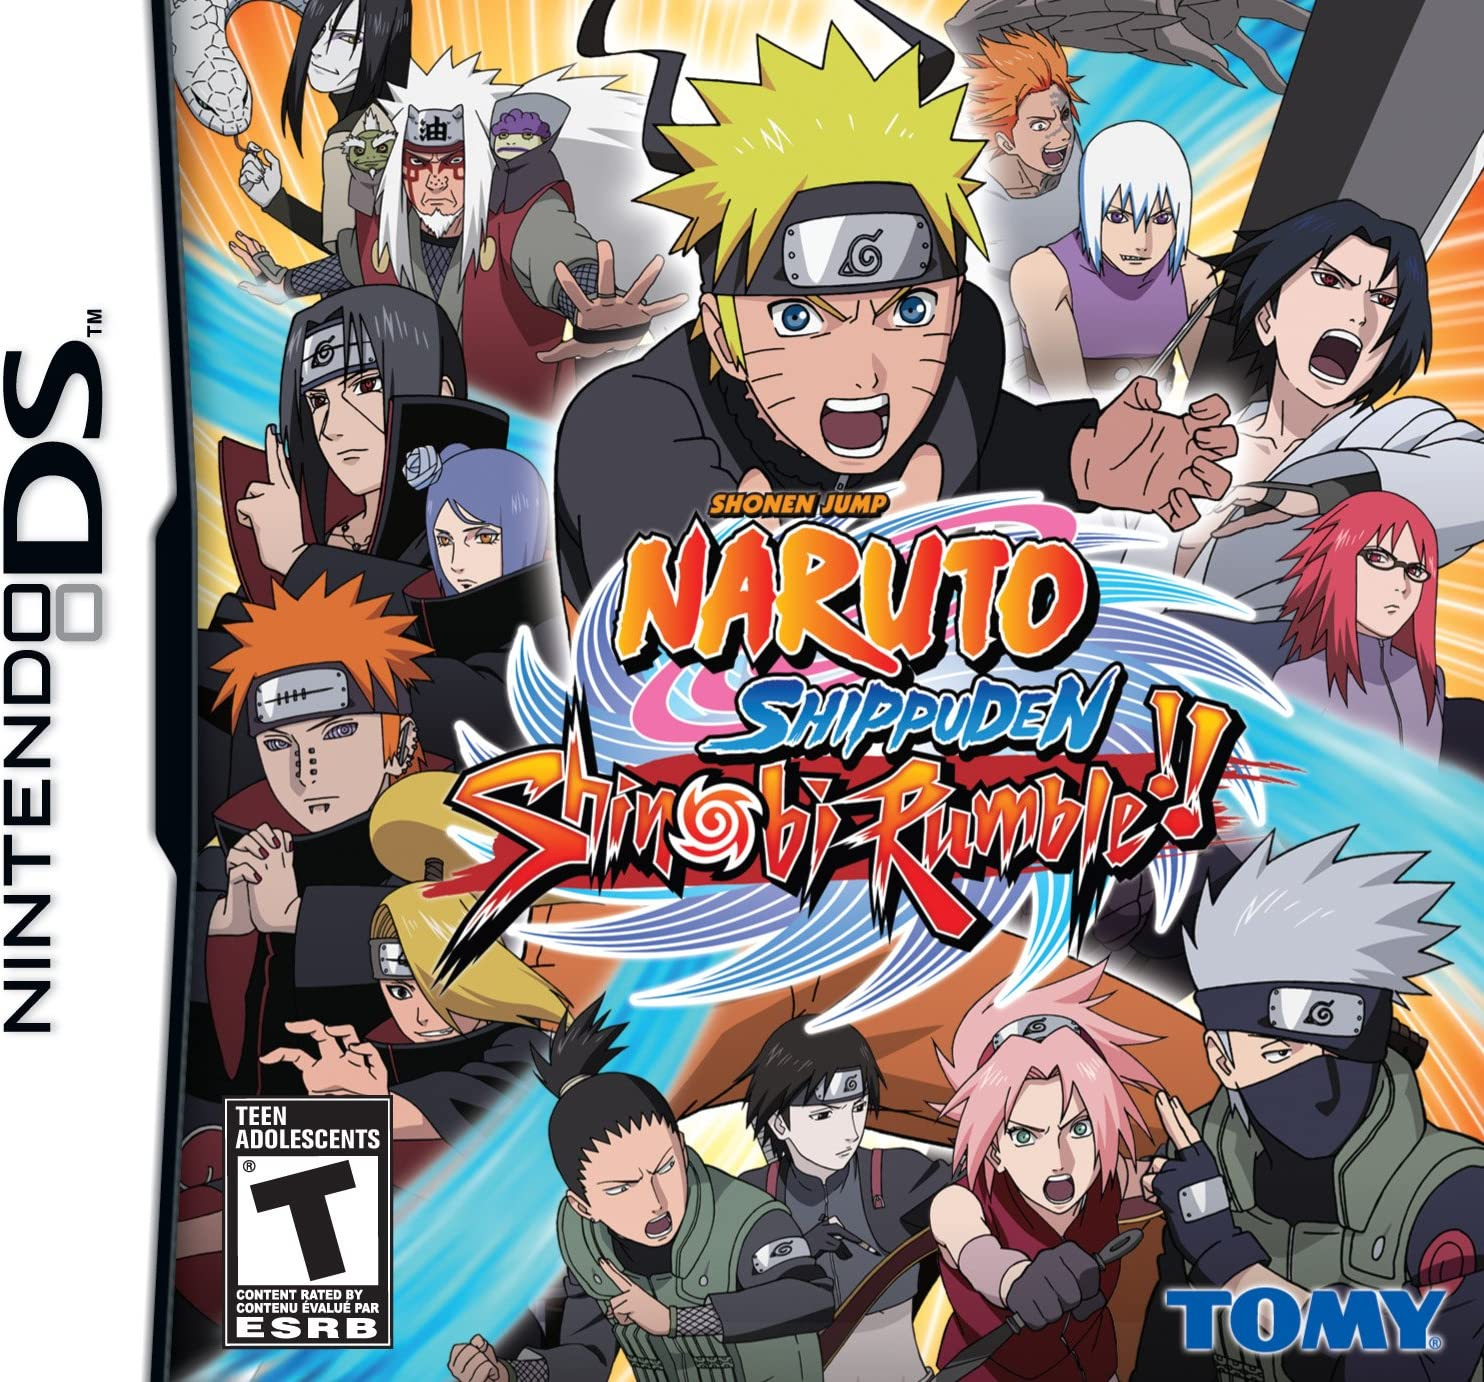 Amazon.com: Naruto Shippuden: Shinobi Rumble - Nintendo DS ...